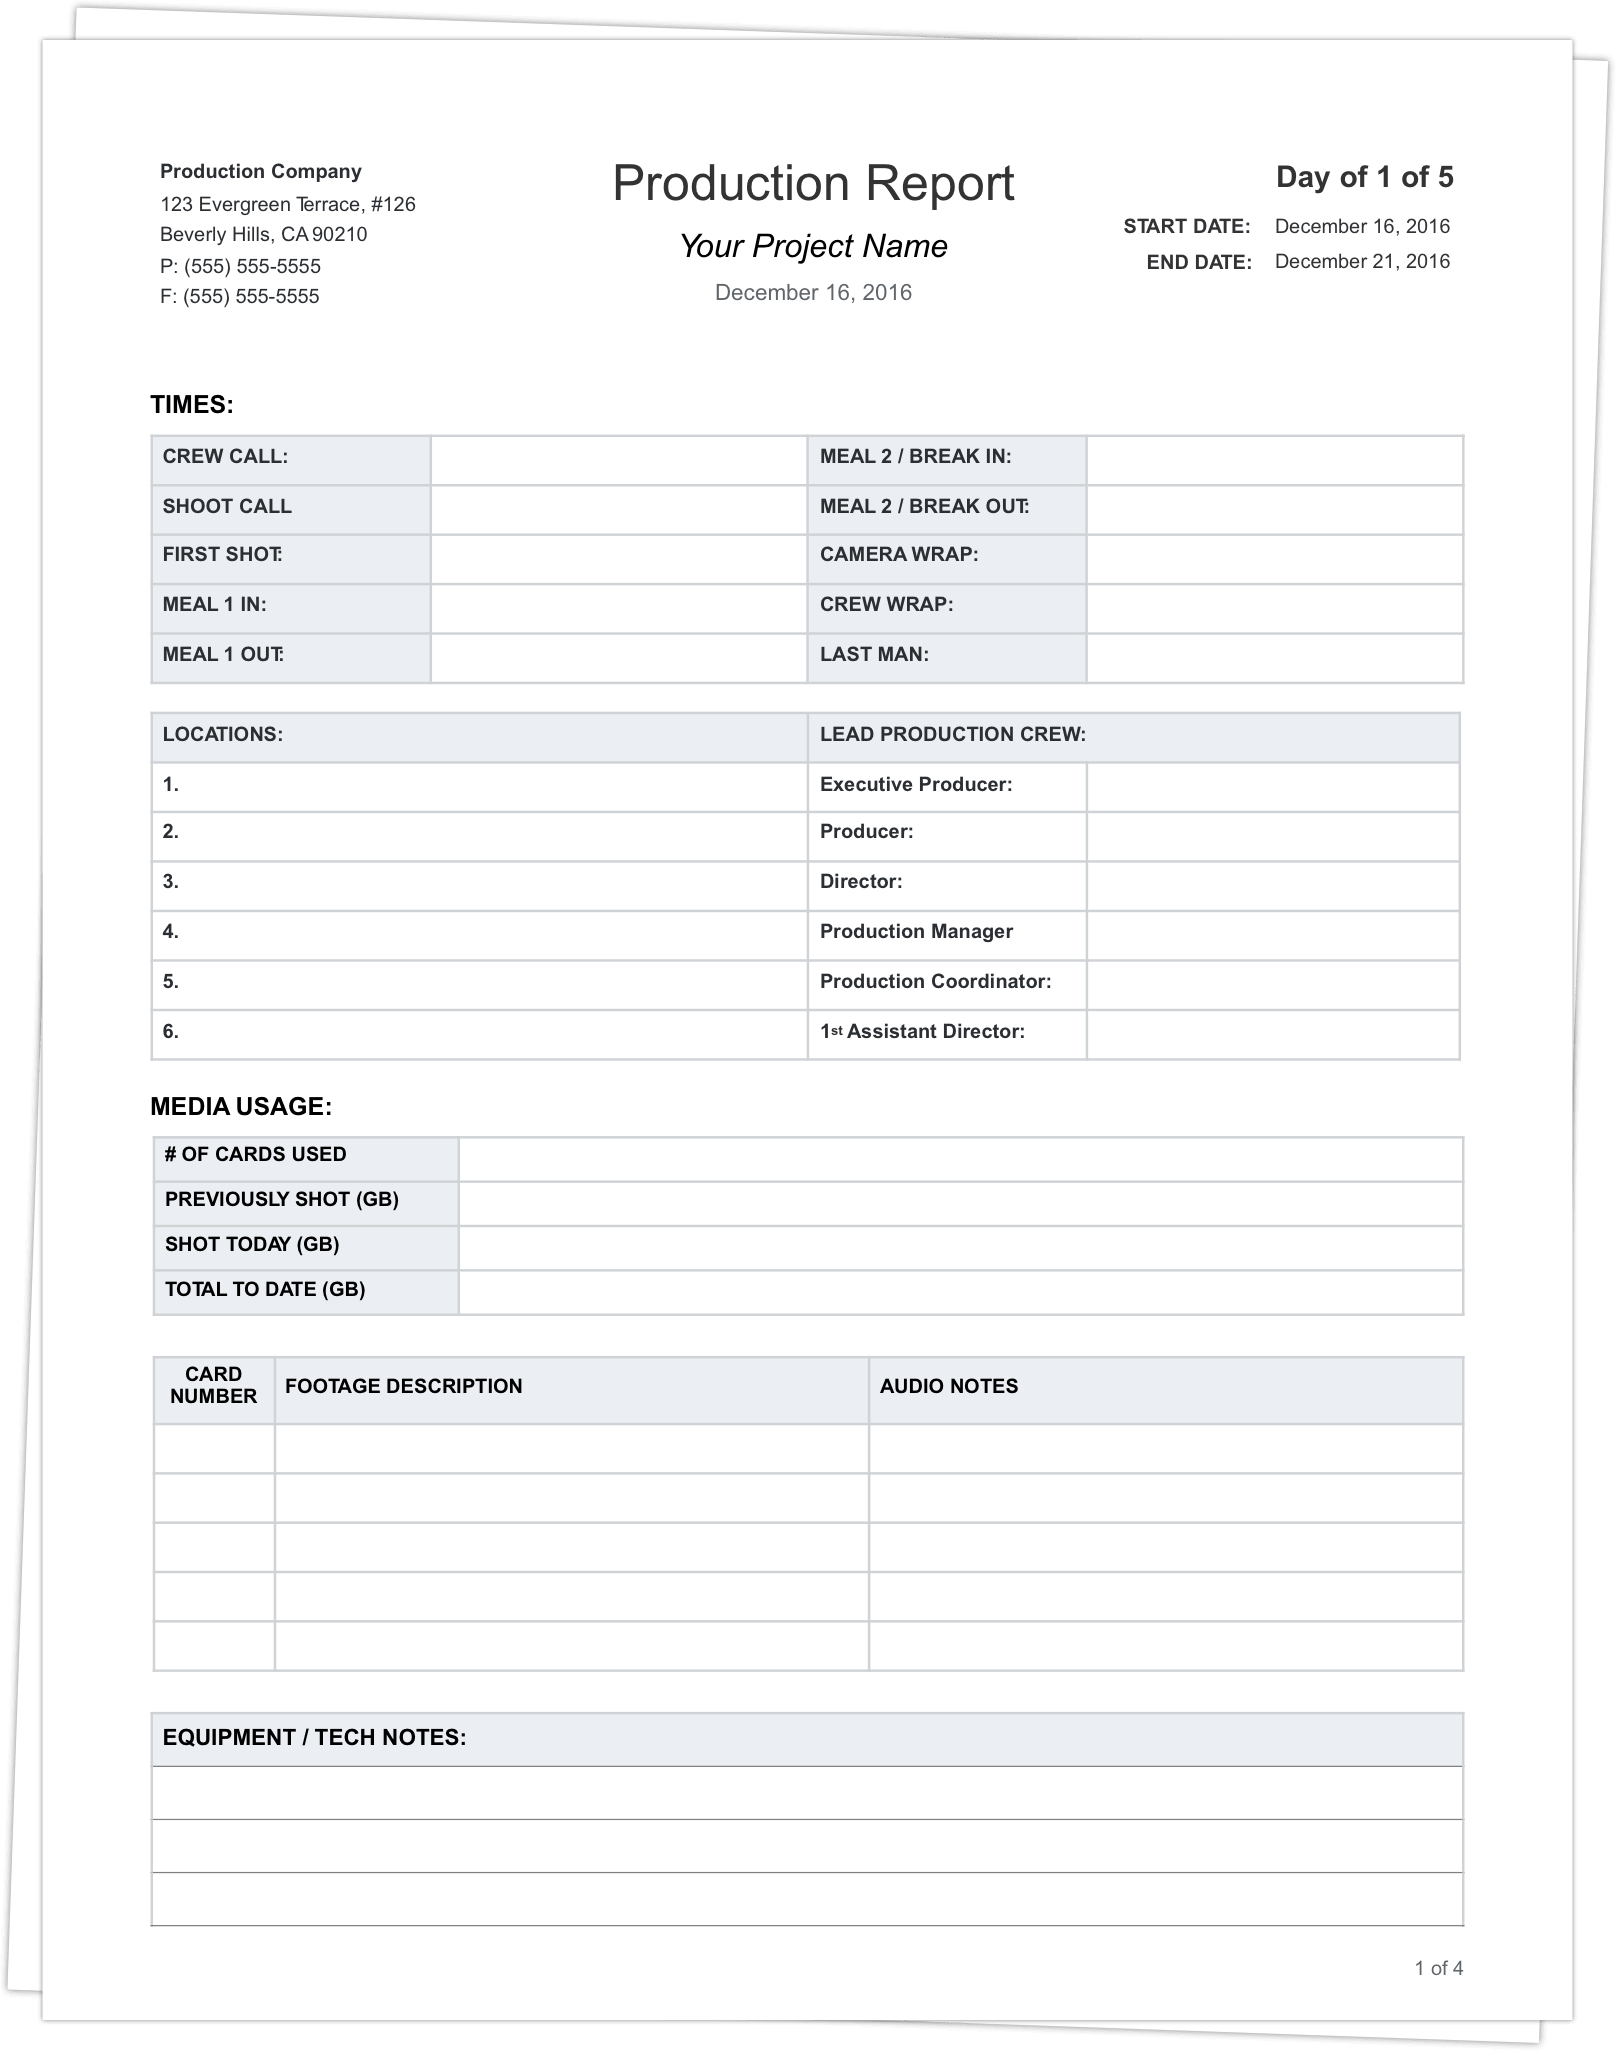 Daily Production Report Template - Stack - StudioBinder